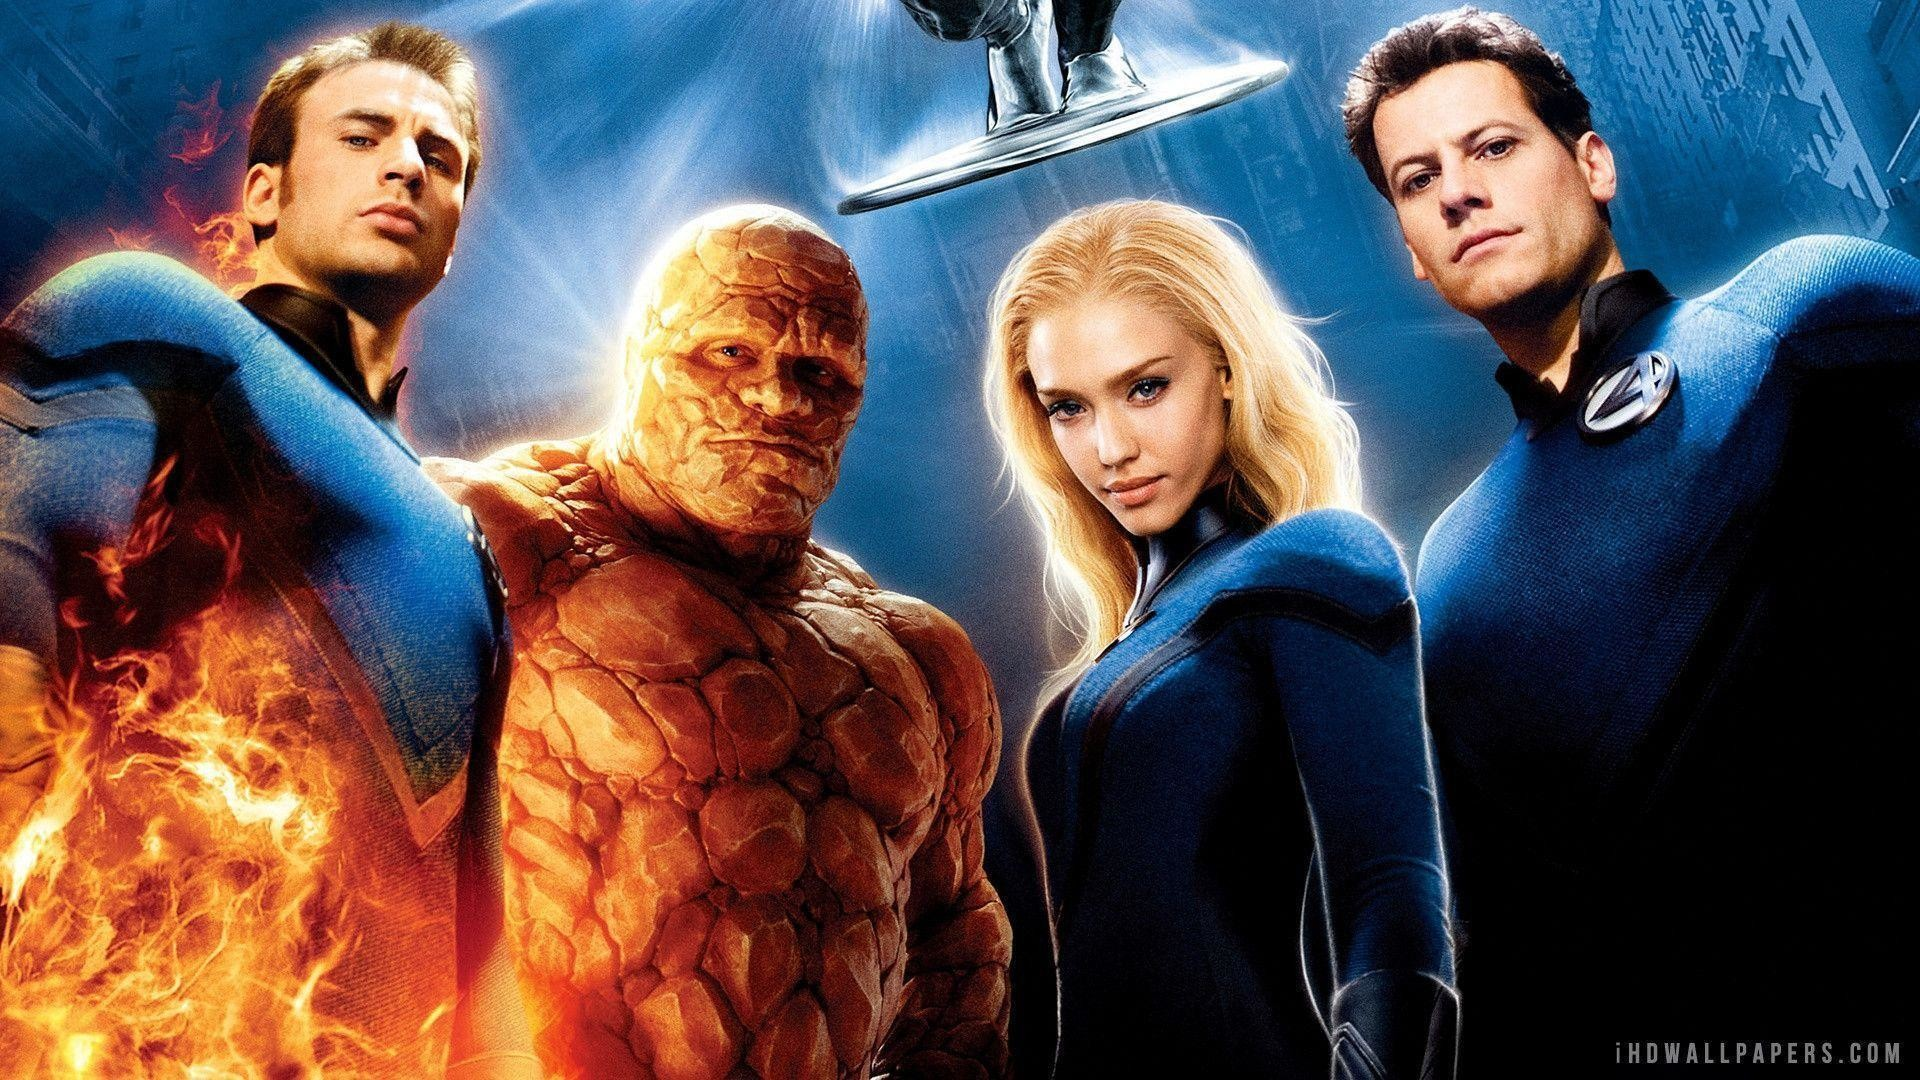 1920x1080 Fantastic 4 Rise of the Silver Surfer HD Wallpaper - iHD Wallpapers